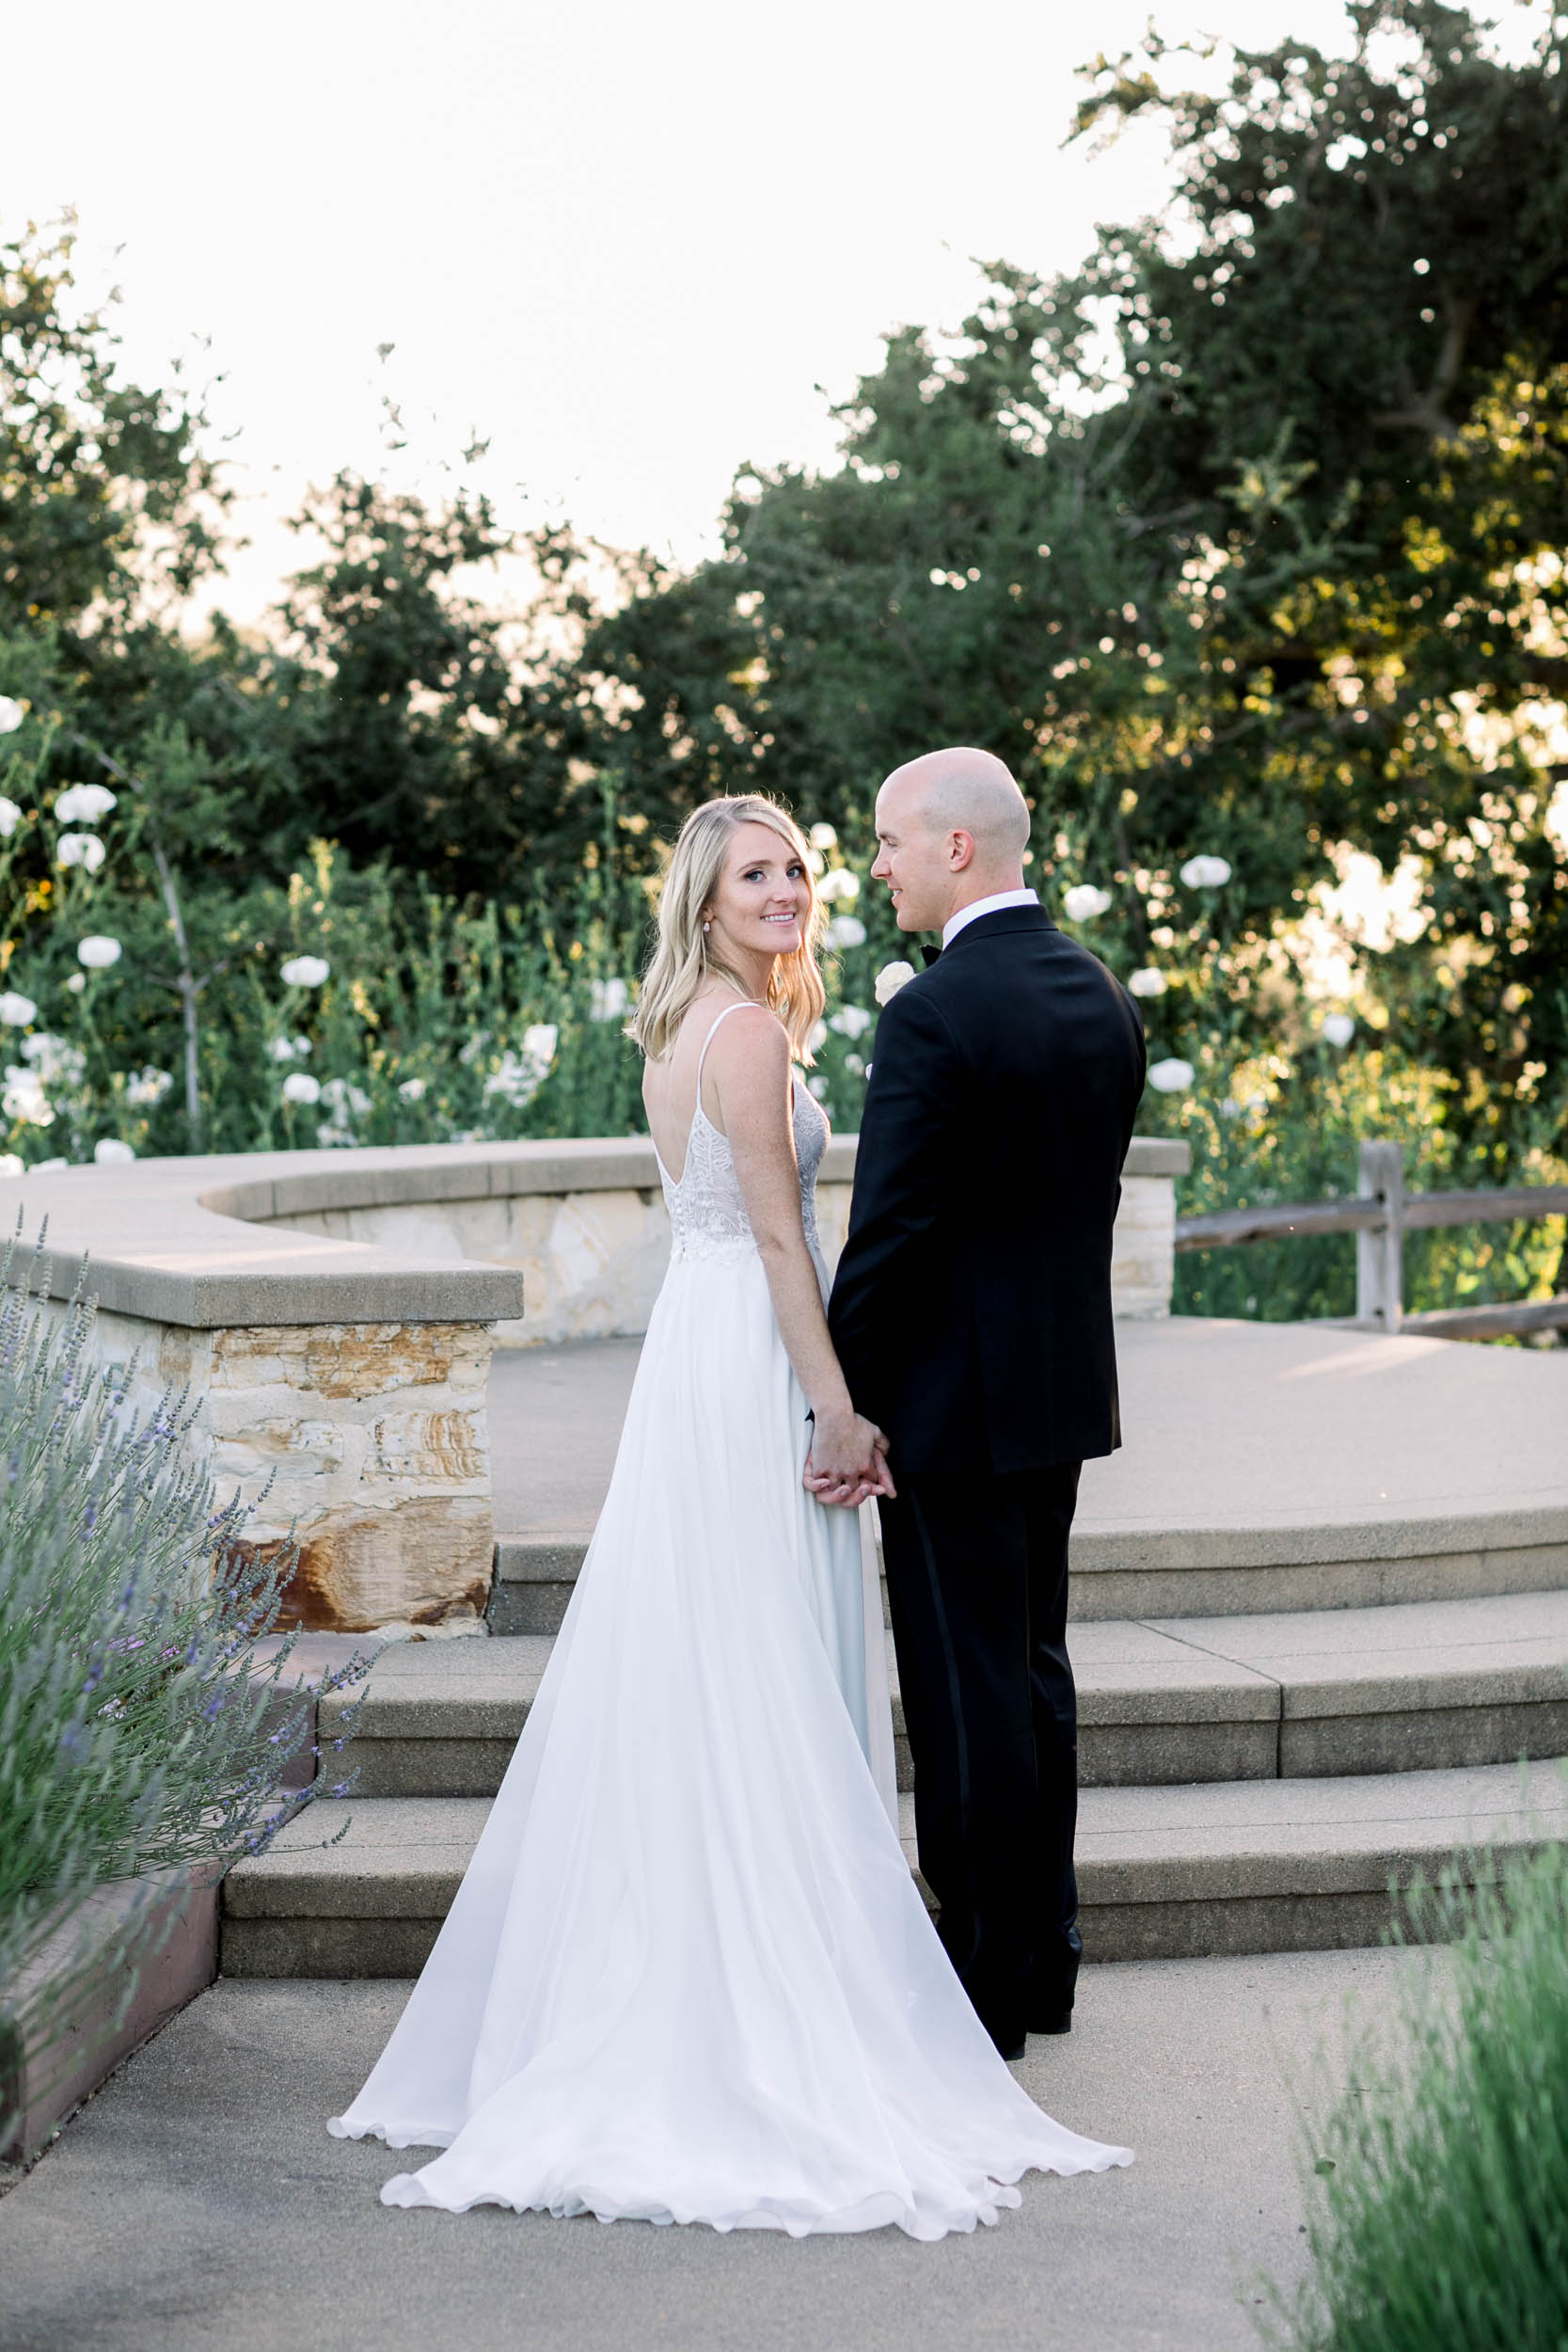 C+D_Holman Ranch Wedding_Carmel Valley_Buena Lane Photography_060619_ER742.jpg